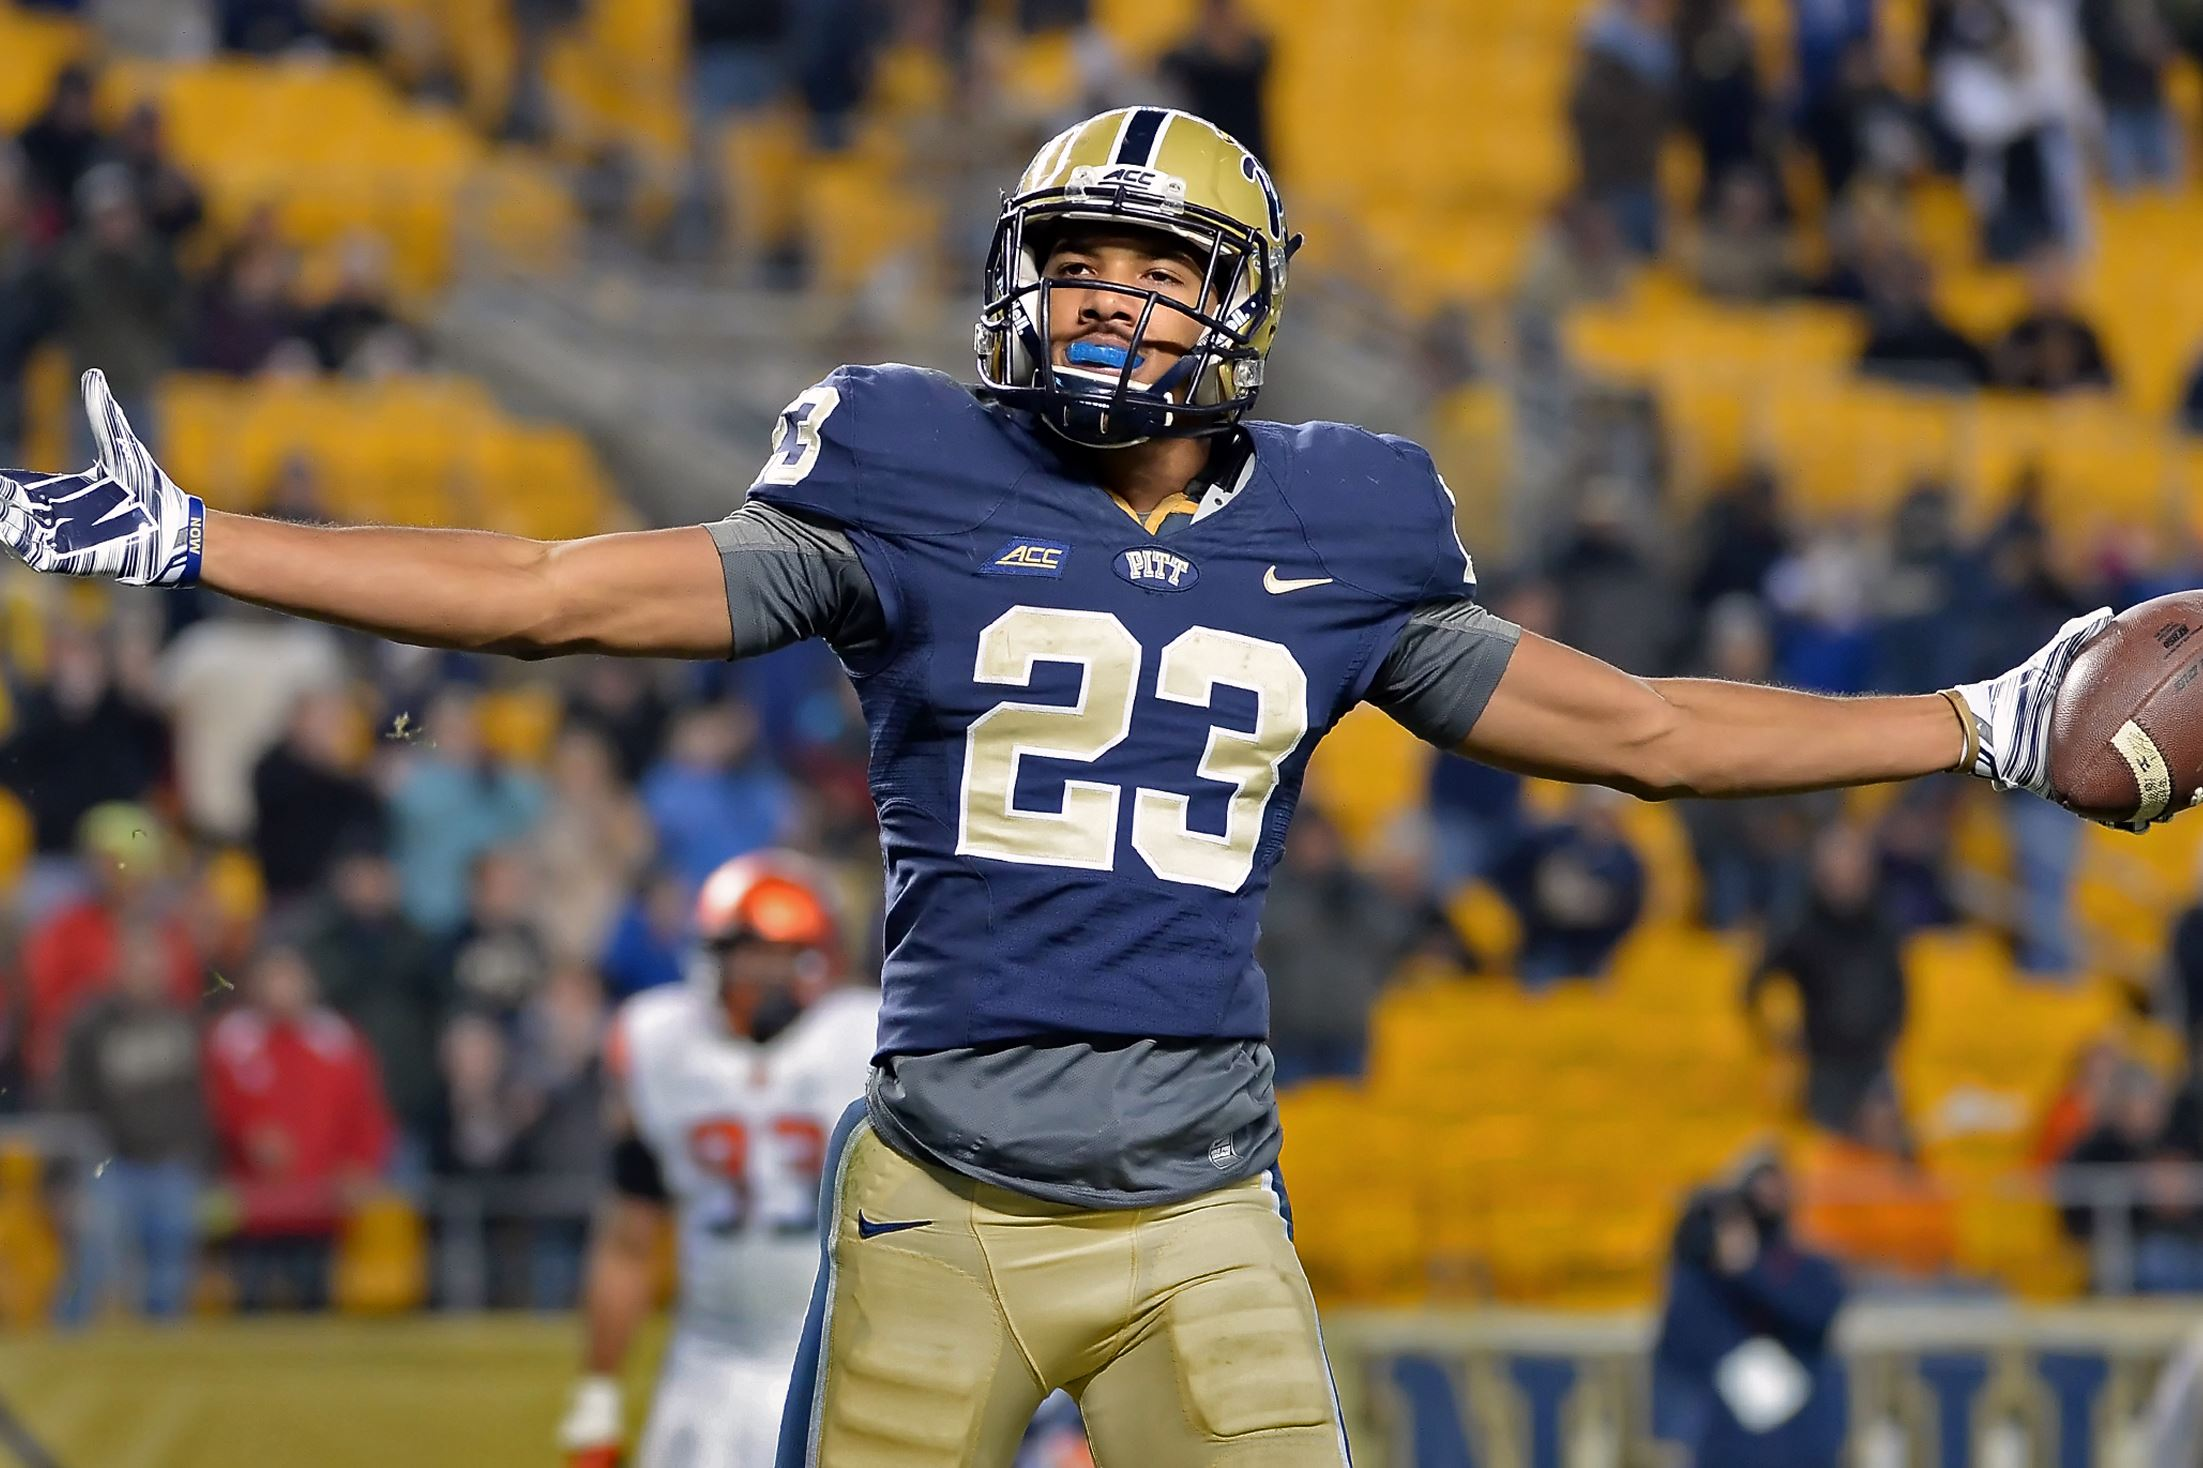 Pitt will be hitting the road early in the 2015 football